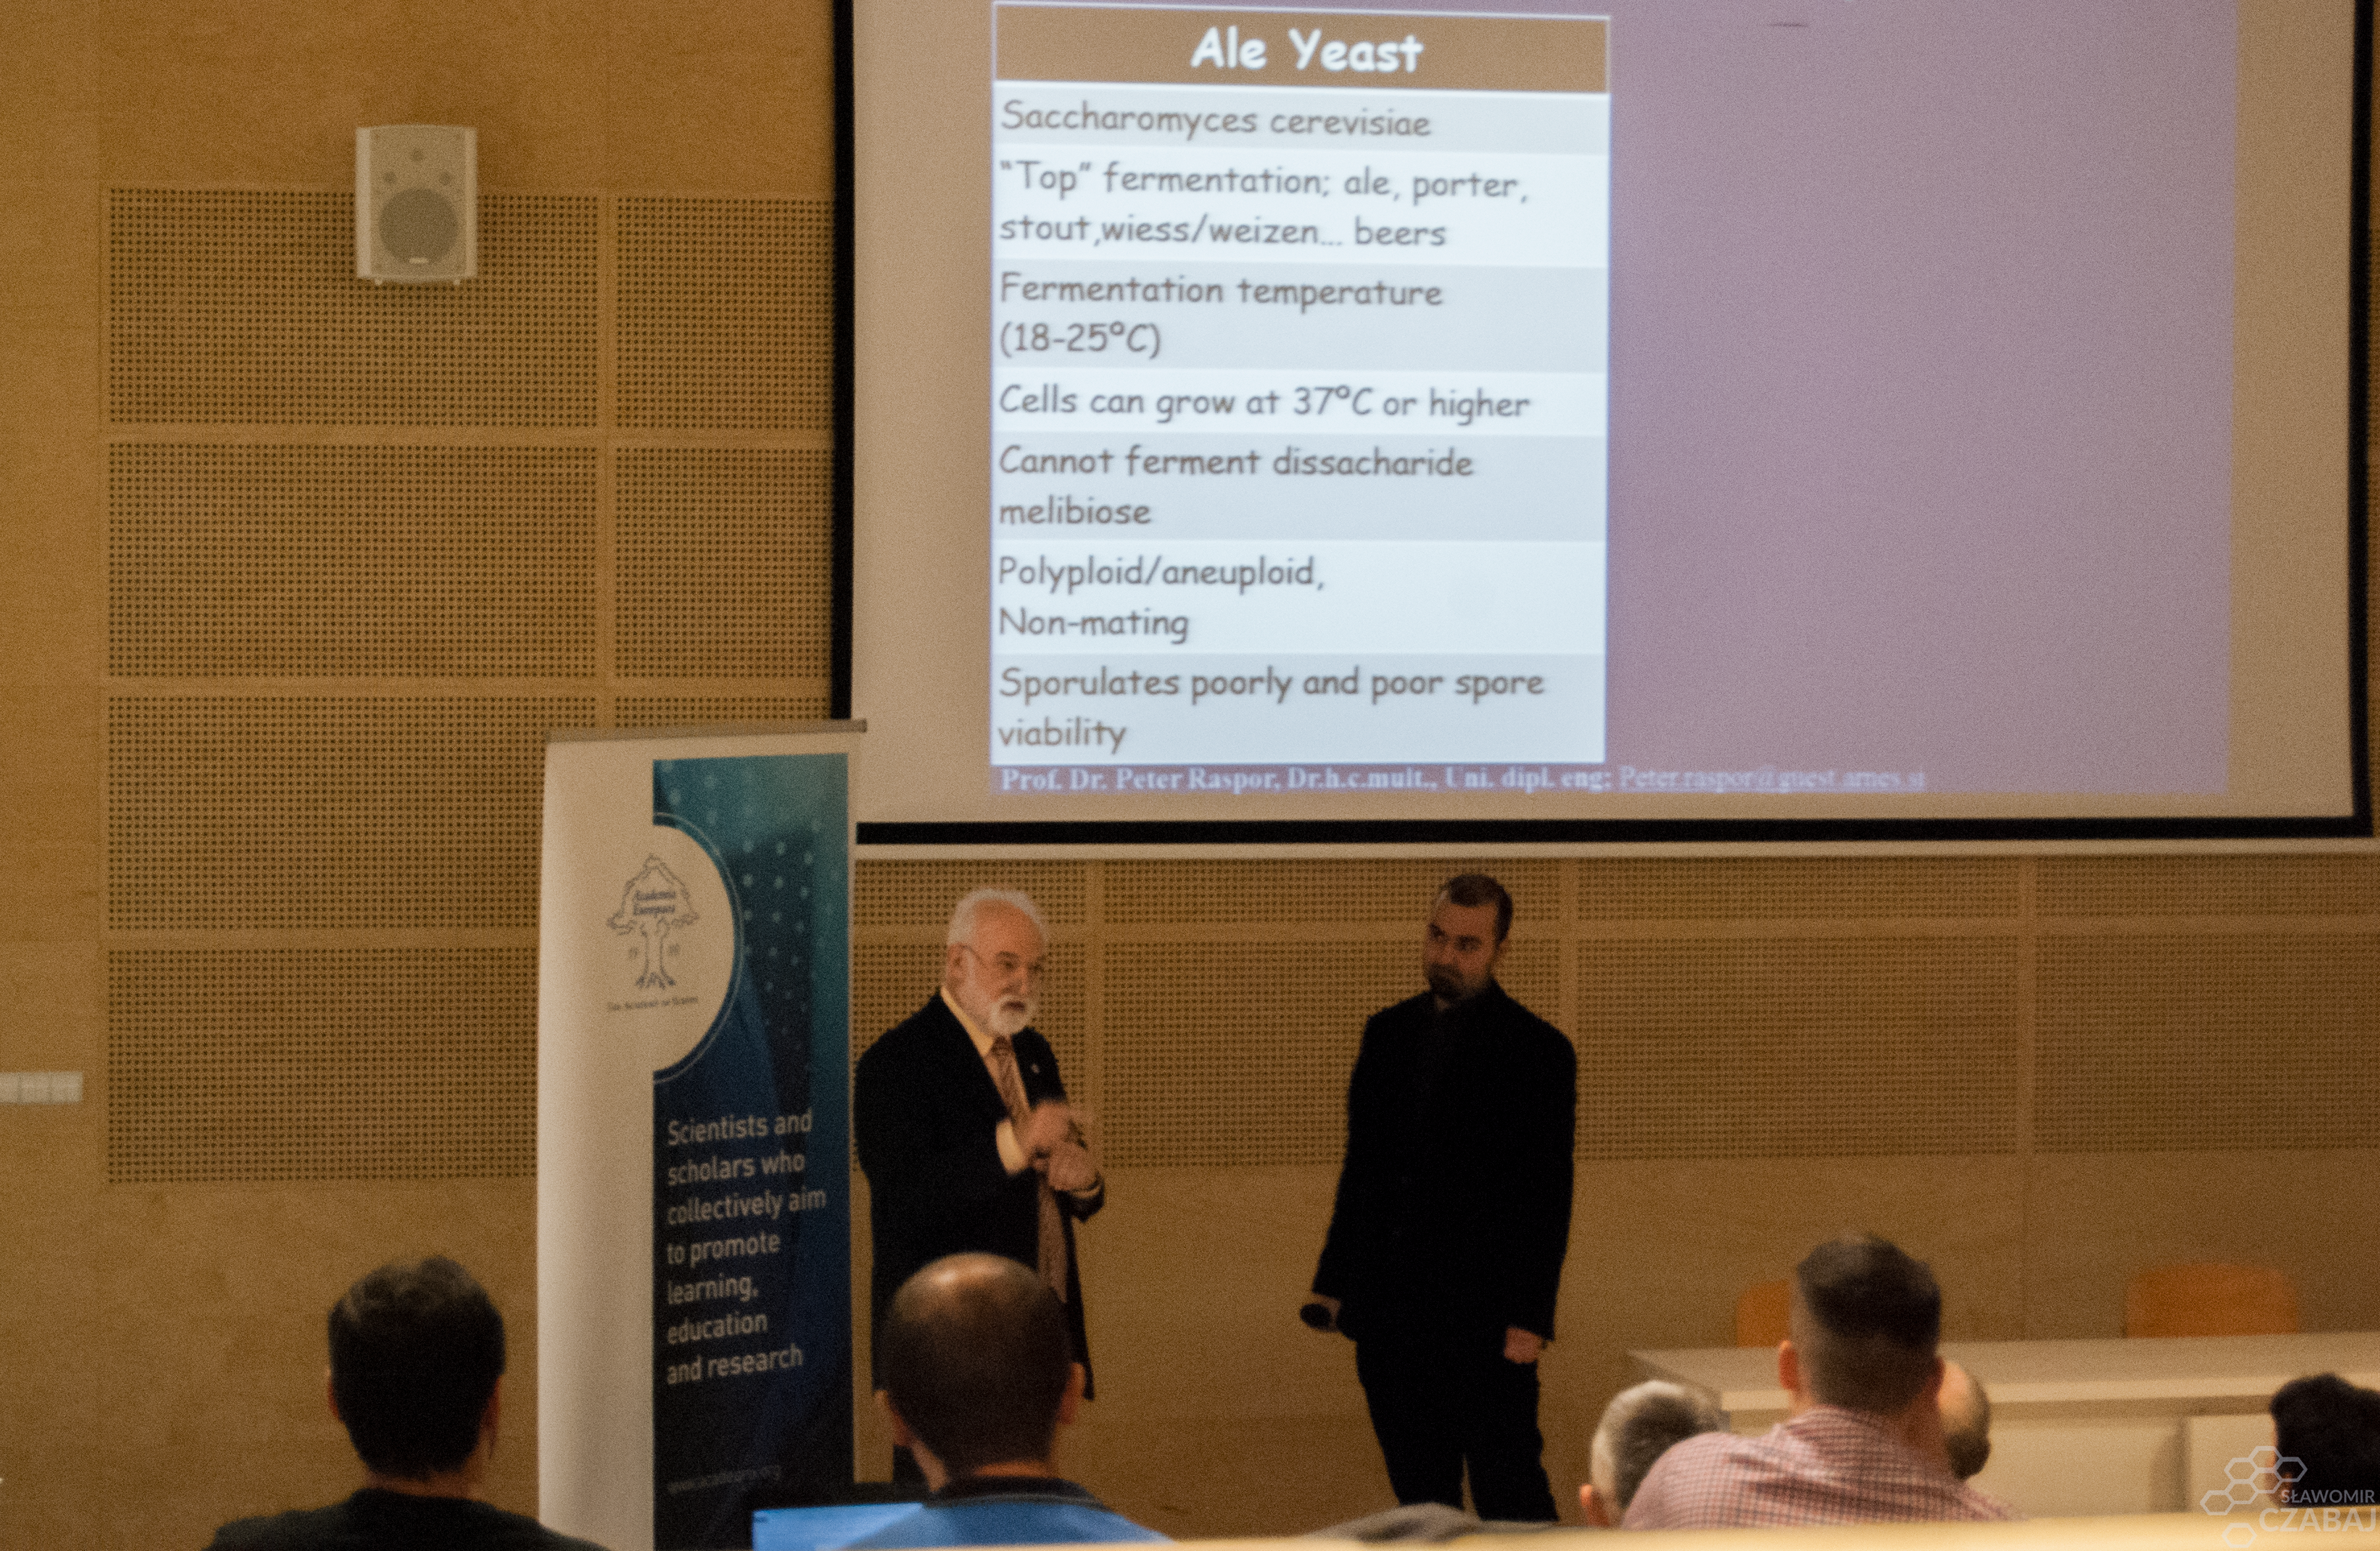 Academy of Europe: The Yeast - Challenge for technologists